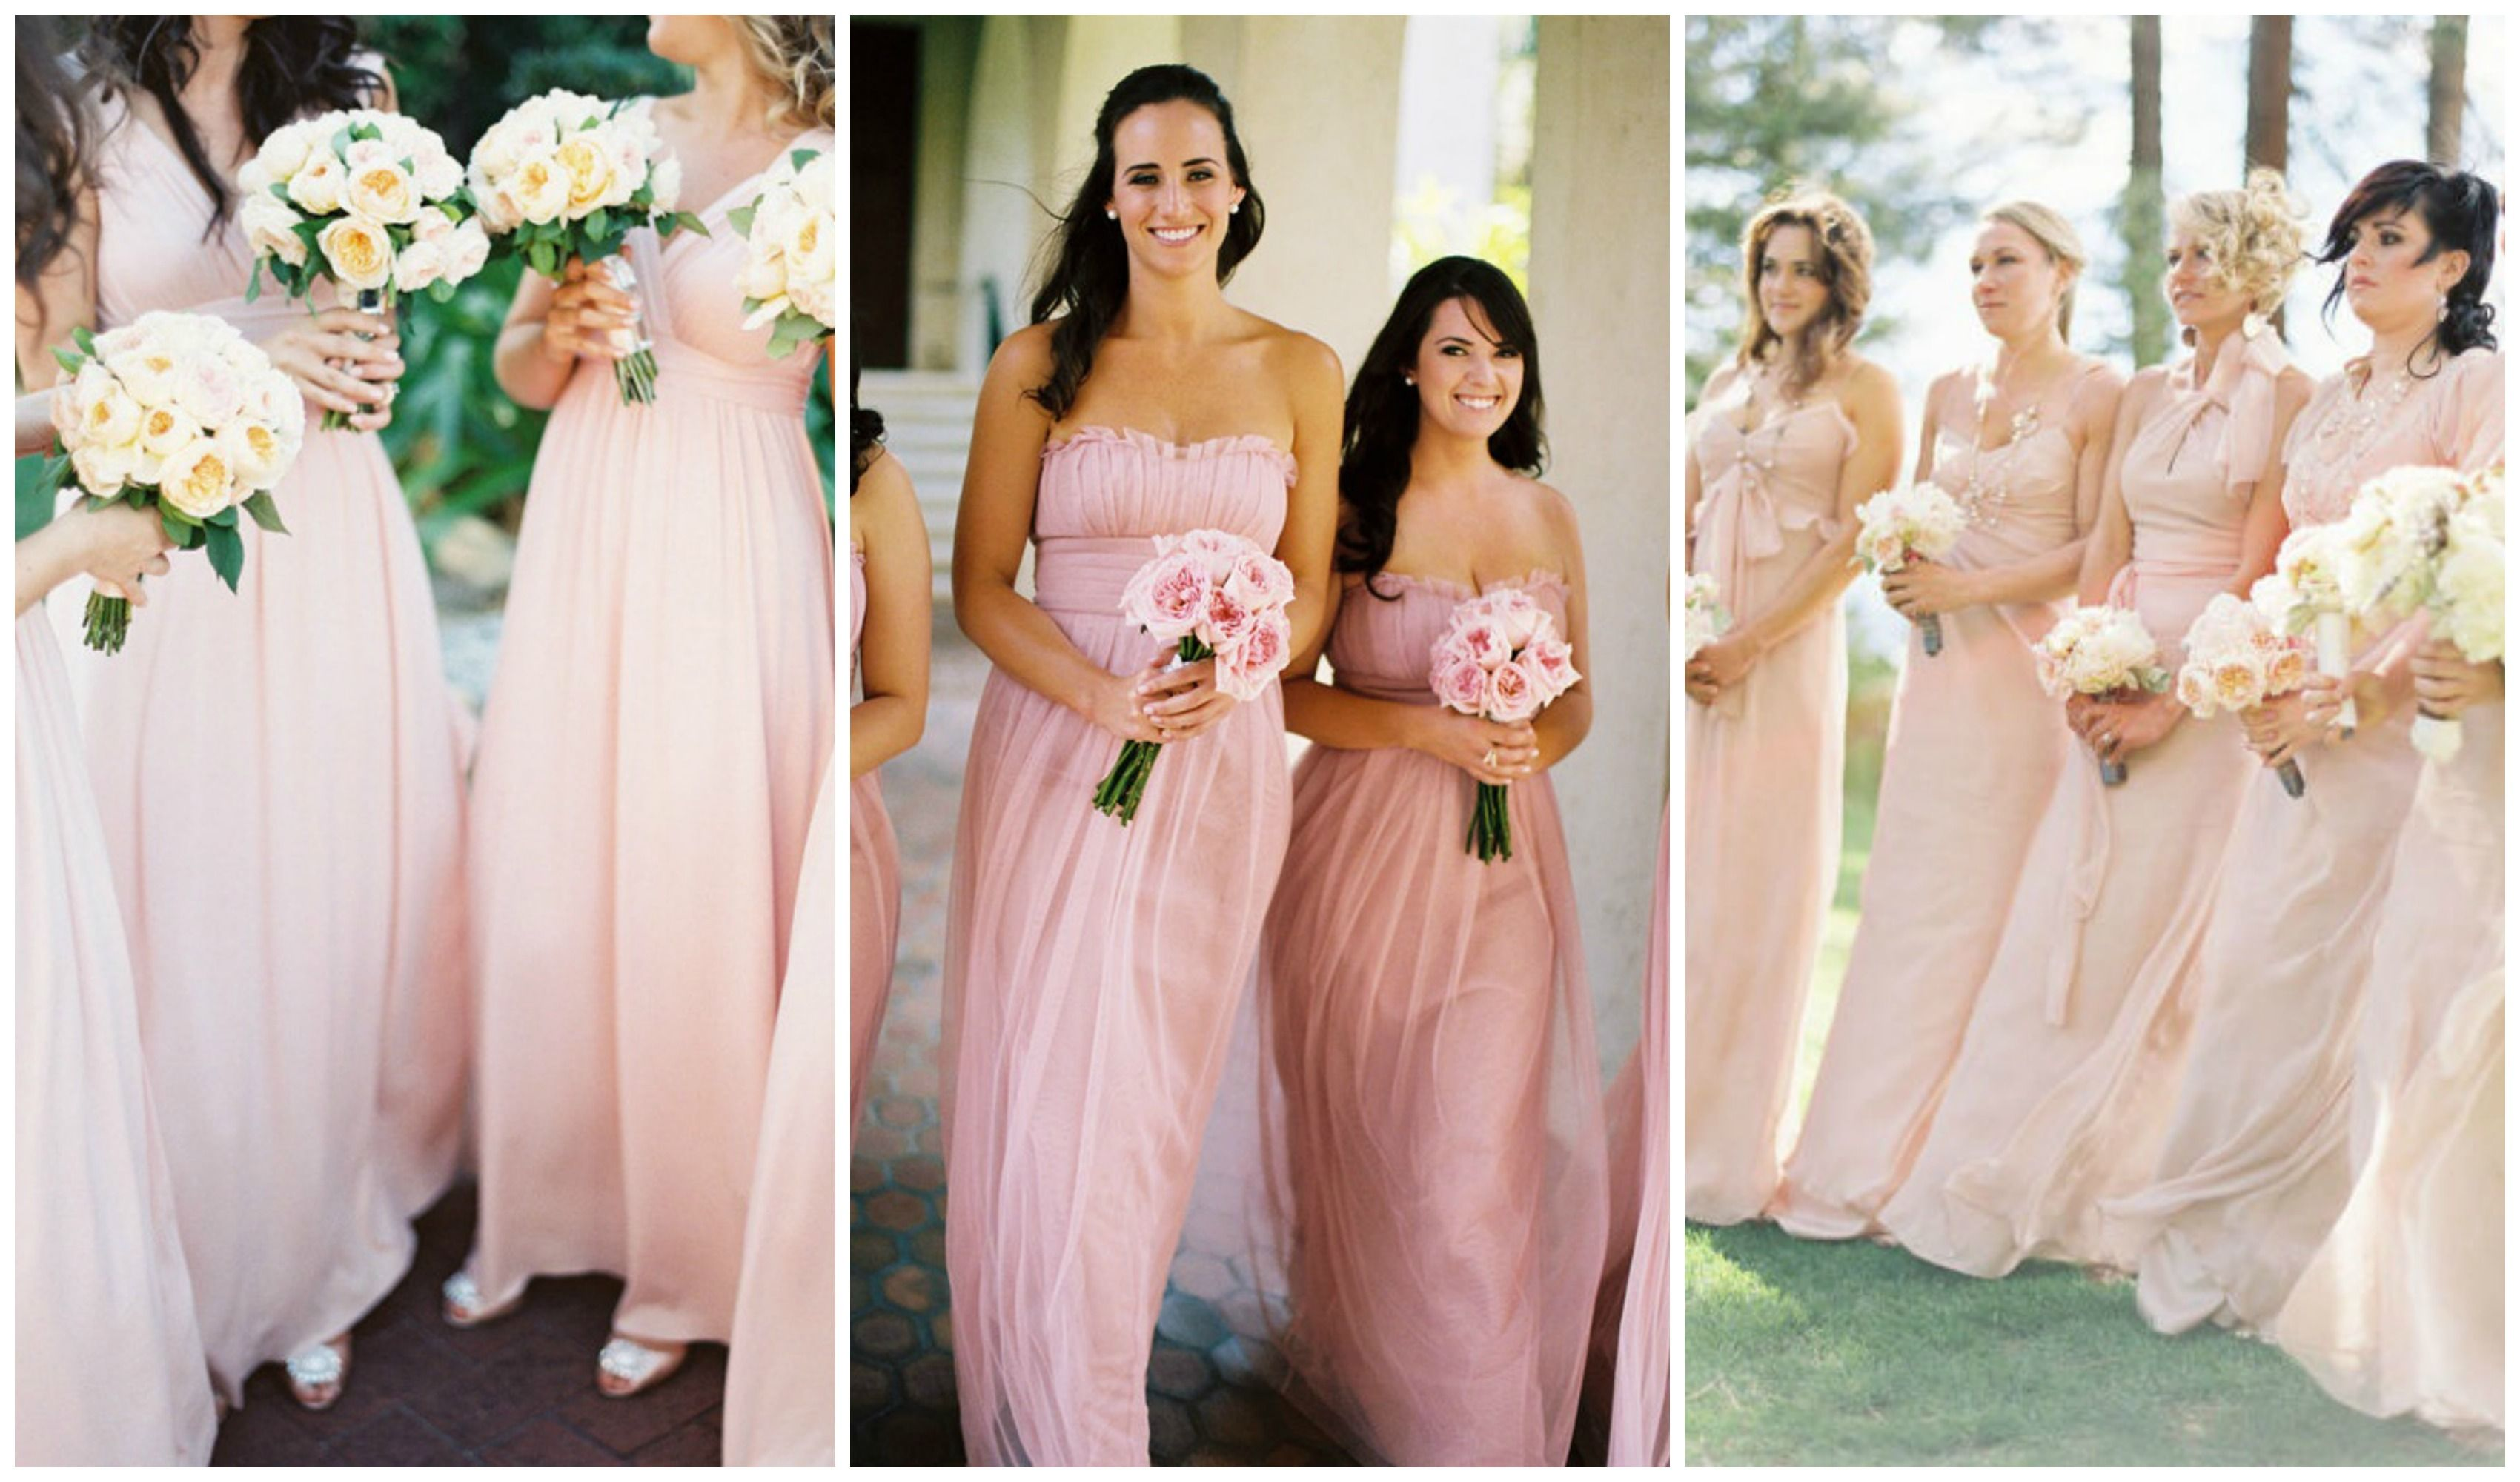 Pink blush bridesmaid dresses bridesmaid dresses pinterest pink blush bridesmaid dresses bridesmaid dresses pinterest pink bridesmaid dresses blush and gold wedding theme ombrellifo Images